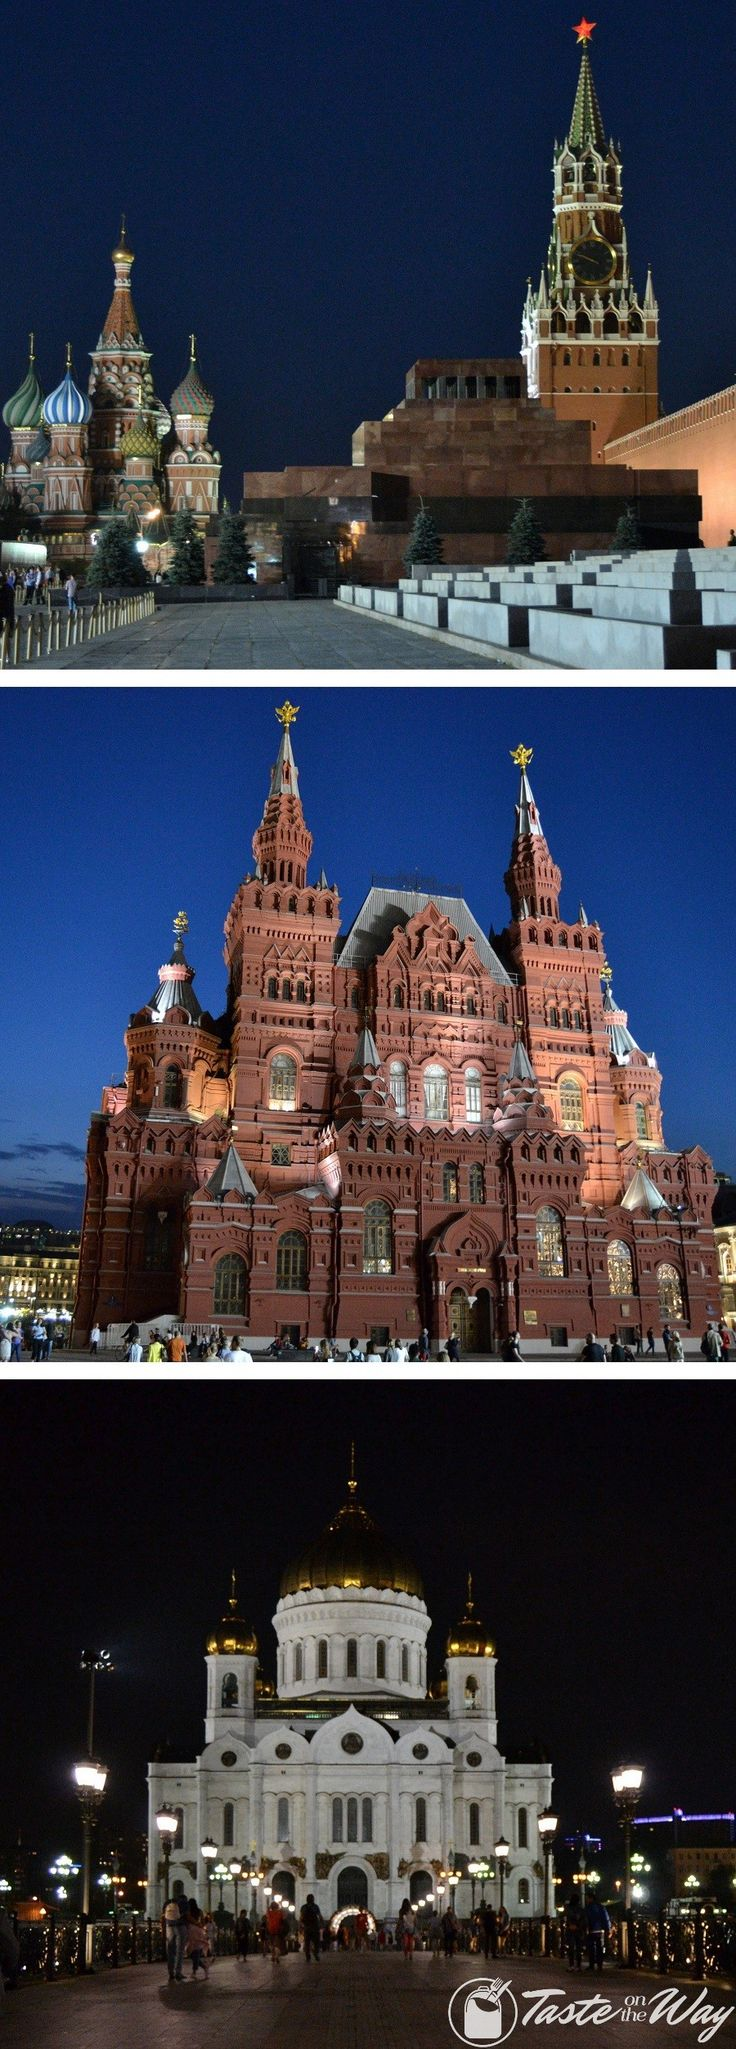 Check out our travel story about the Red Square in Moscow with pictures @tasteontheway